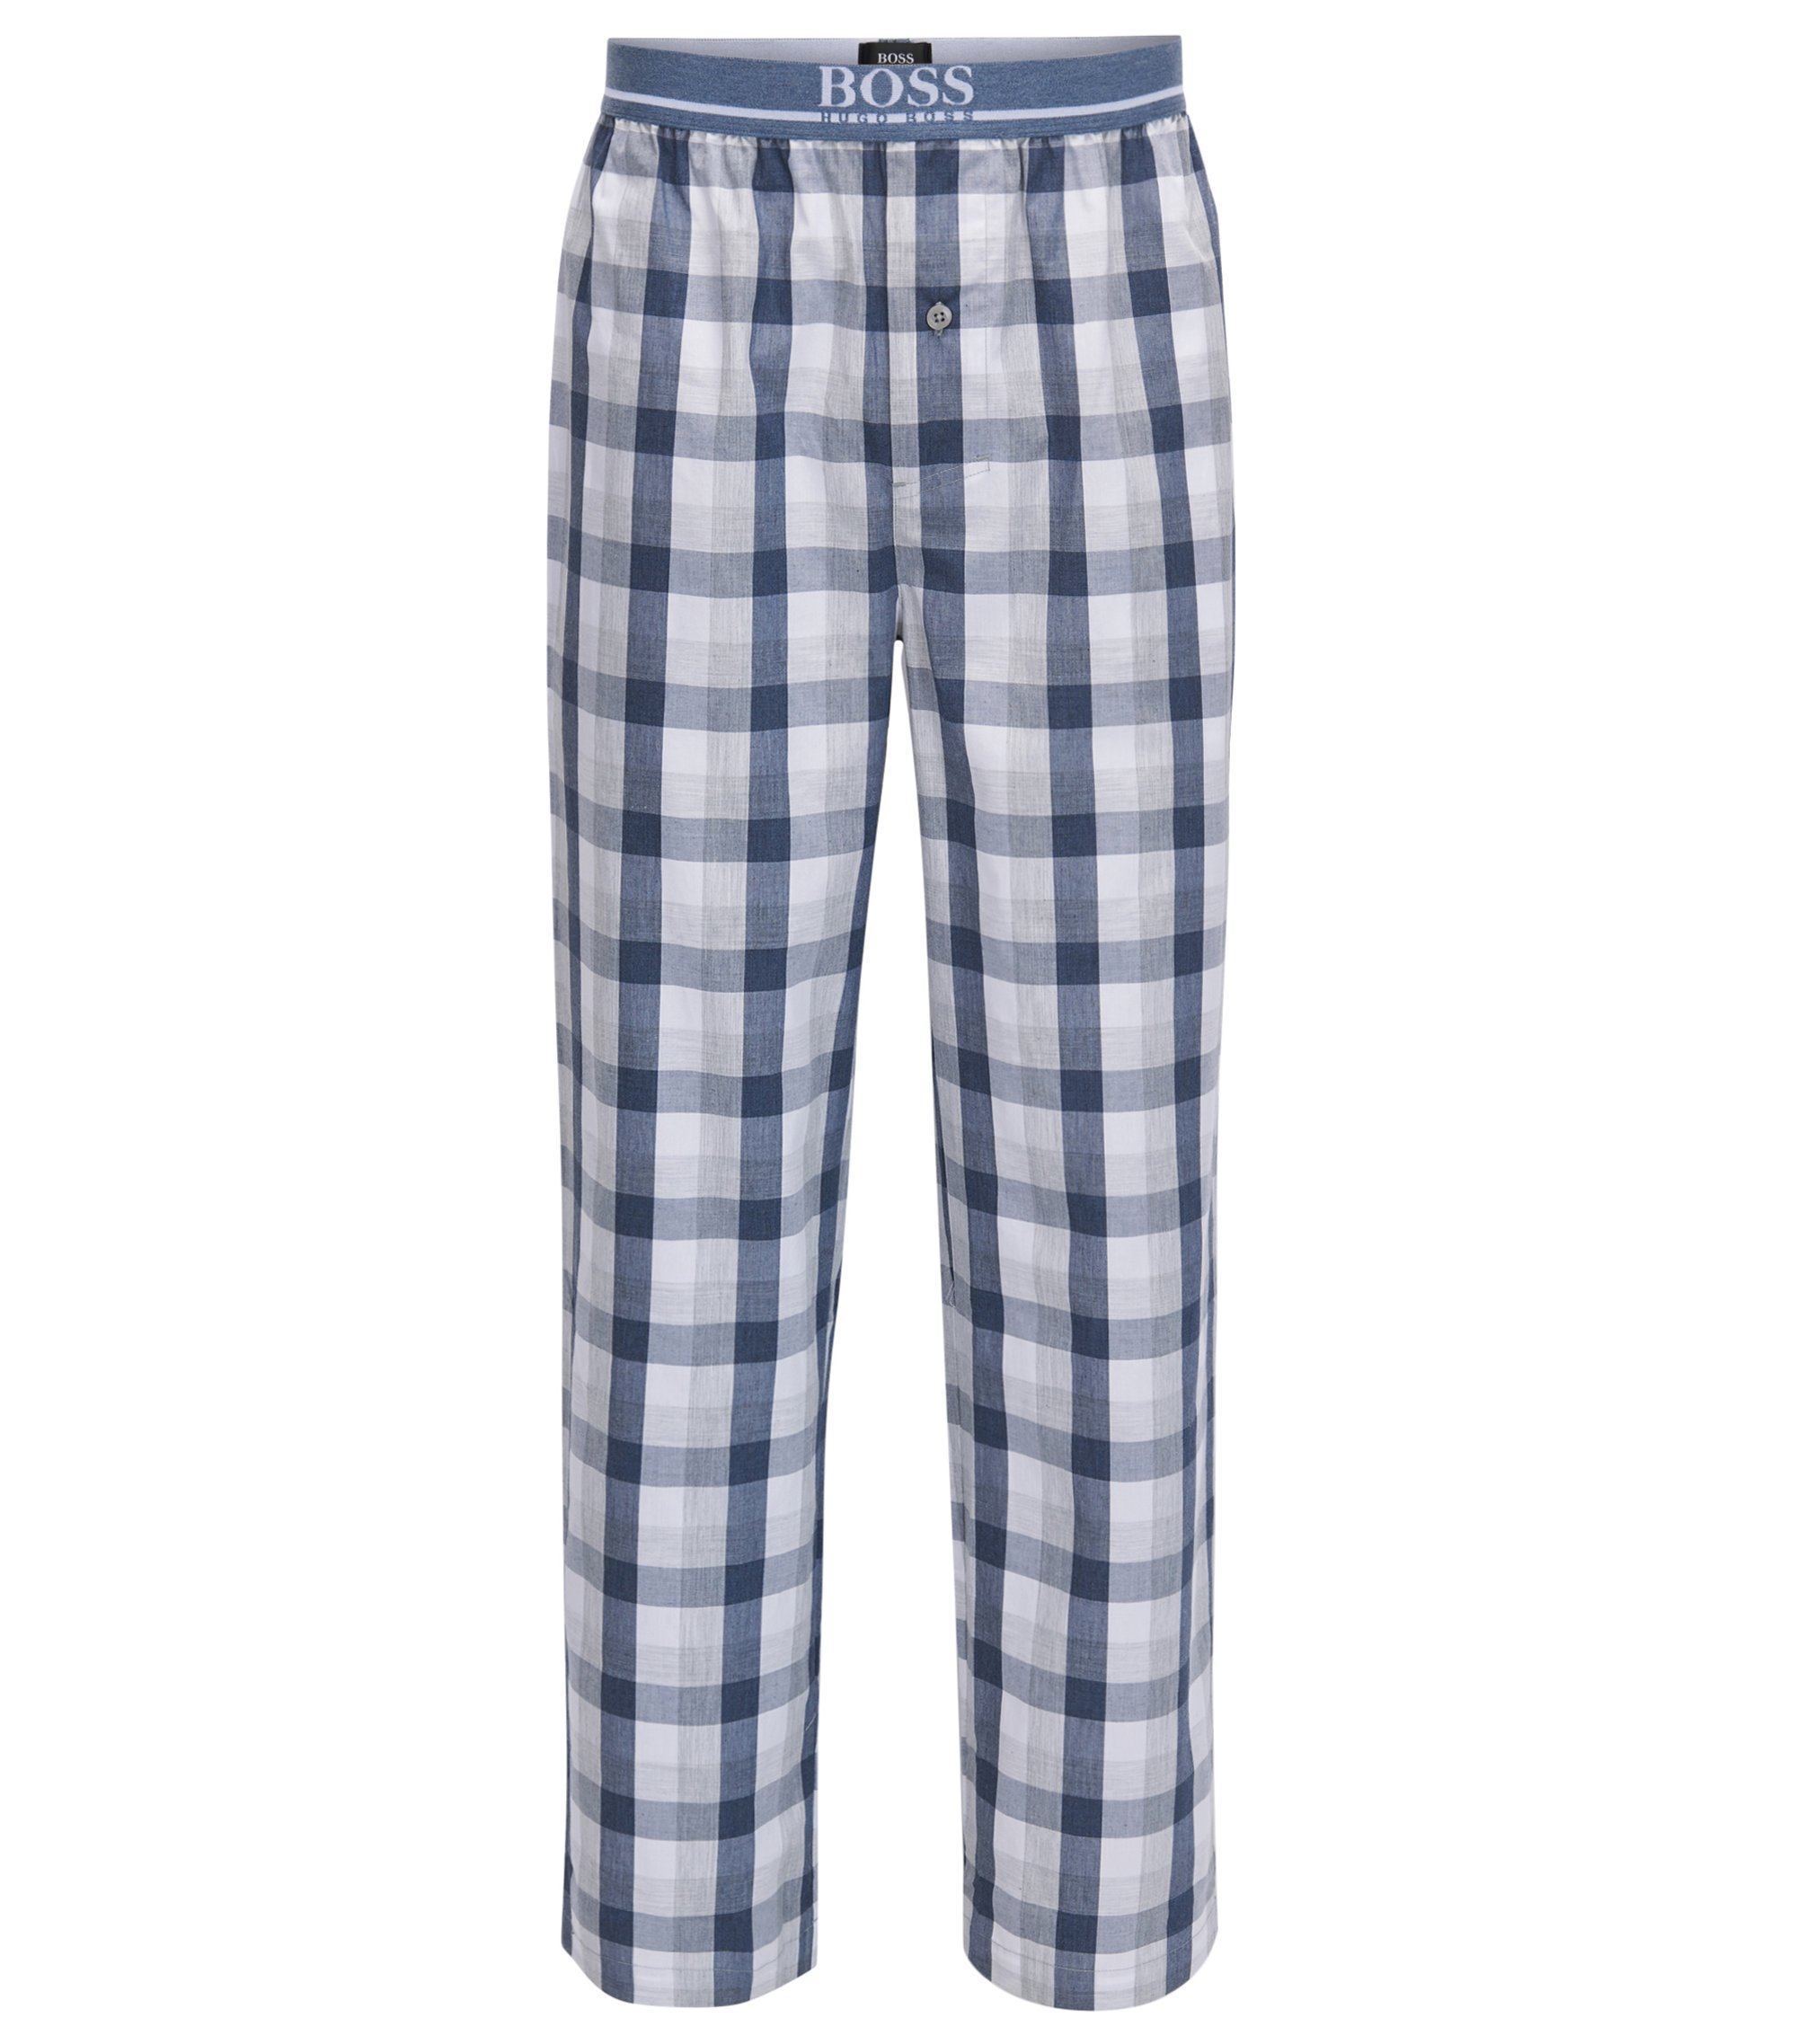 Pyjama bottoms in denim-check cotton poplin, Dark Blue